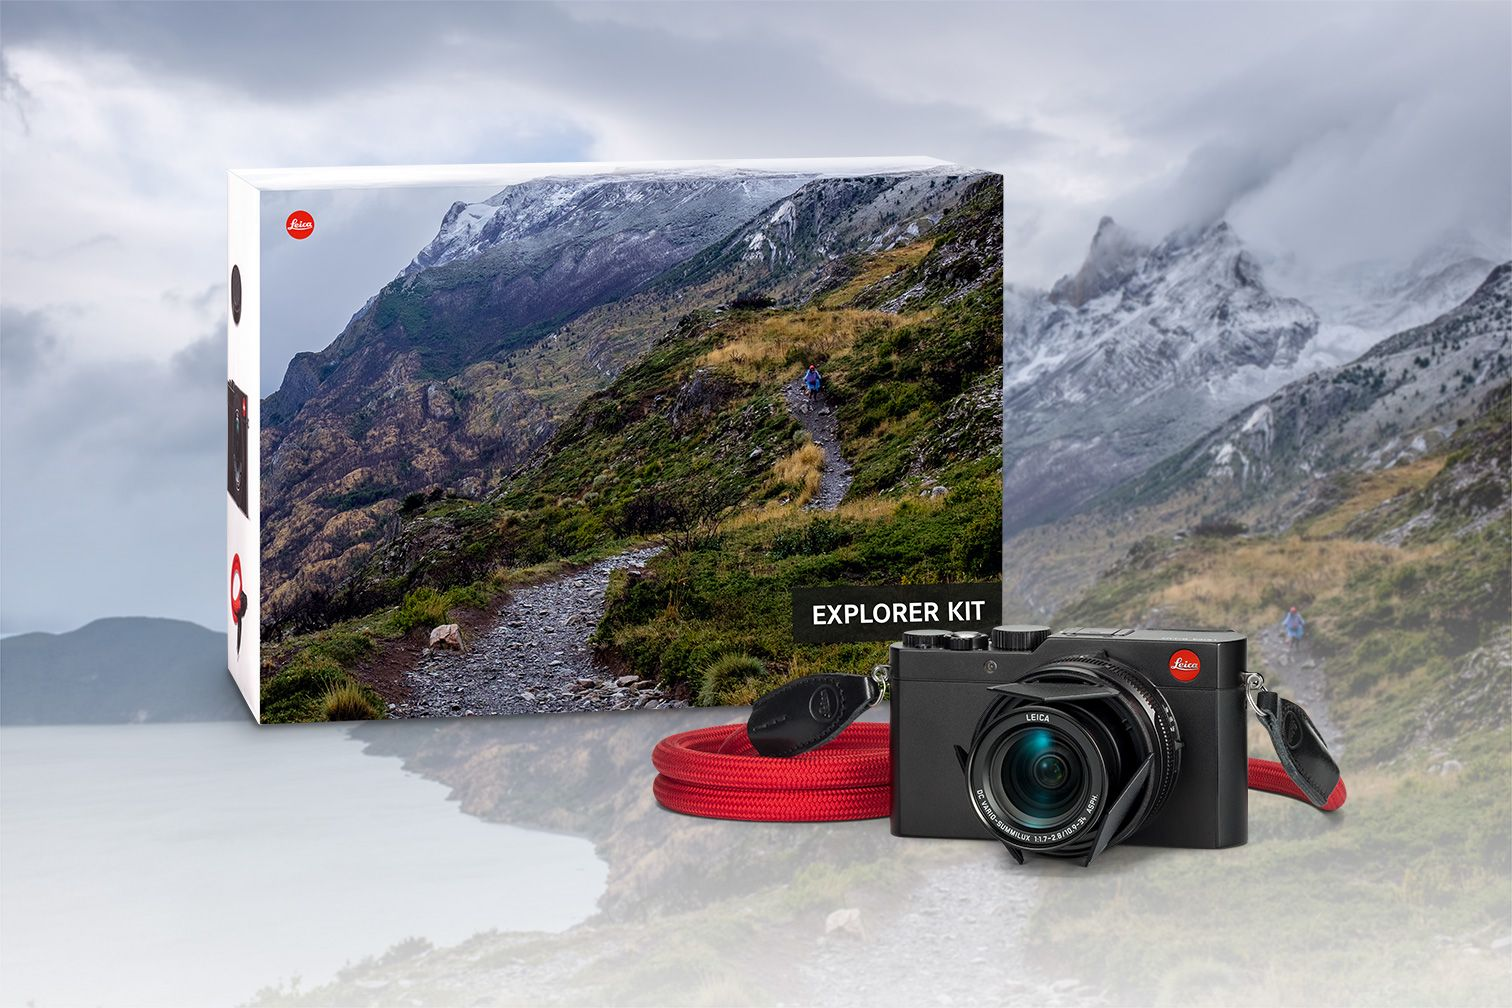 NEW: LEICA D-LUX EXPLORER KIT - Capture those unique moments - instinctively